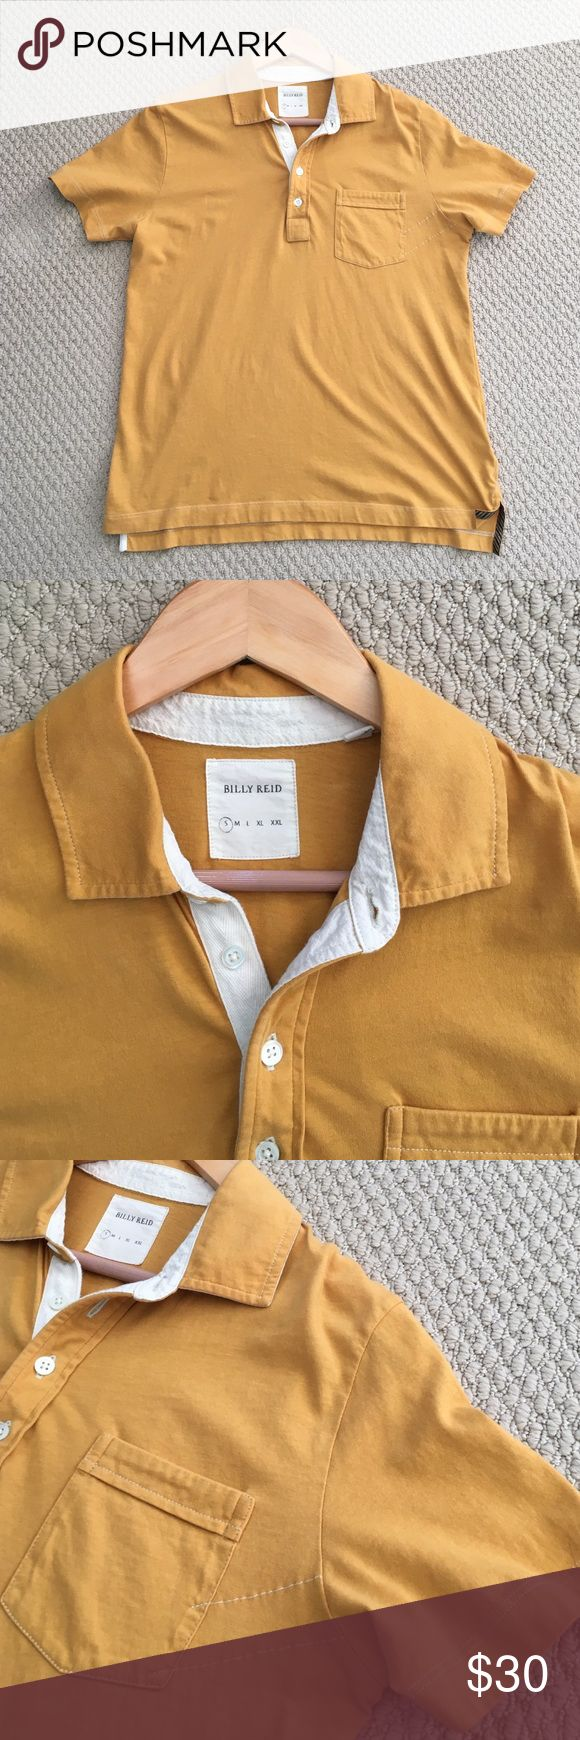 SALE! Billy Reid Polo Shirt • Mustard Yellow • EUC This mustard yellow shirt-sleeve polo shirt from Billy Reid is in fantastic shape! It is very comfortable and shows no signs of wear! Size Small Billy Reid Shirts Polos